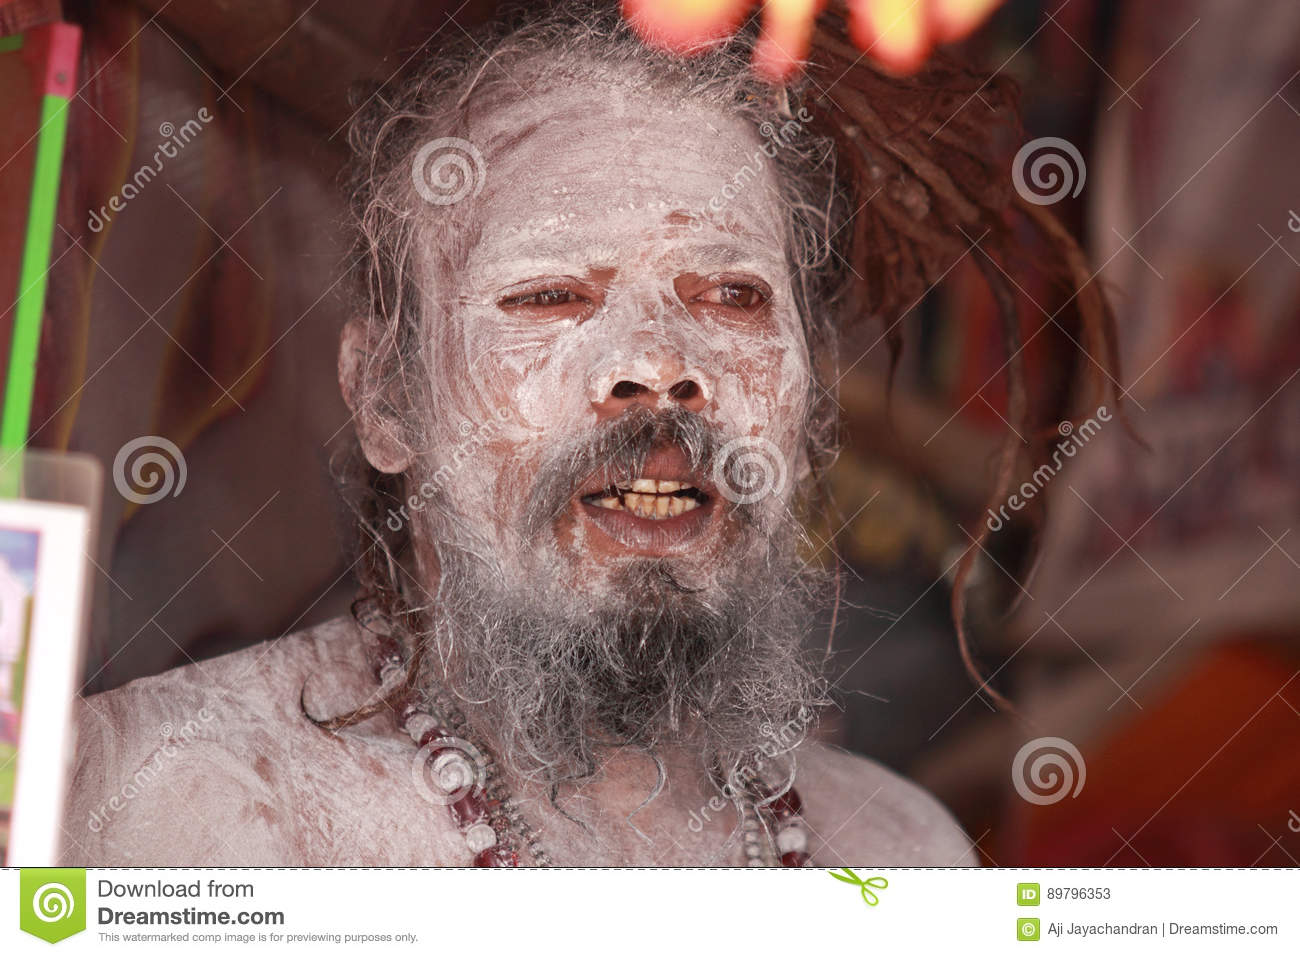 Arresting Sadhus Portrait Photography Religious Photography: Sadhu At Maha Kumbh Mela Editorial Stock Photo. Image Of